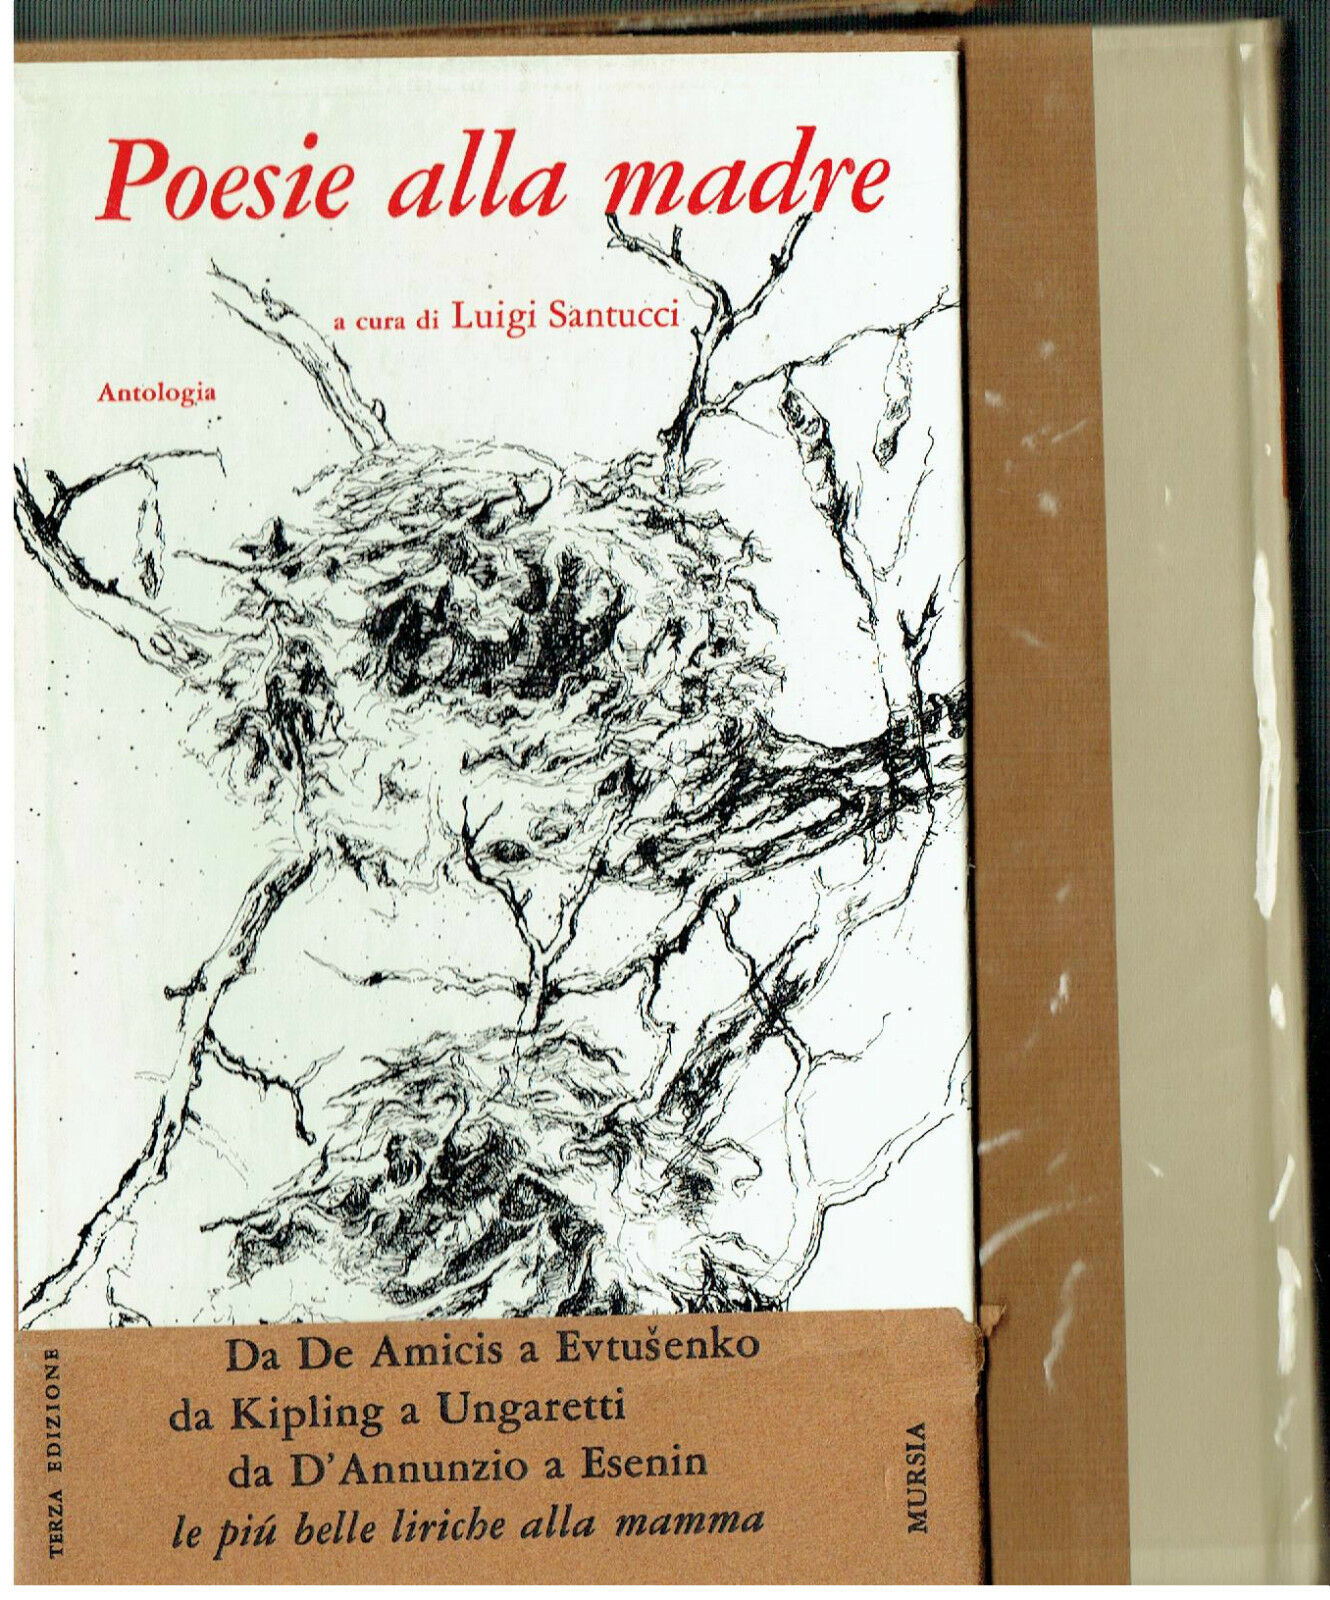 POESIE**GIORGIO BAFFO**SUNDAY PRESS